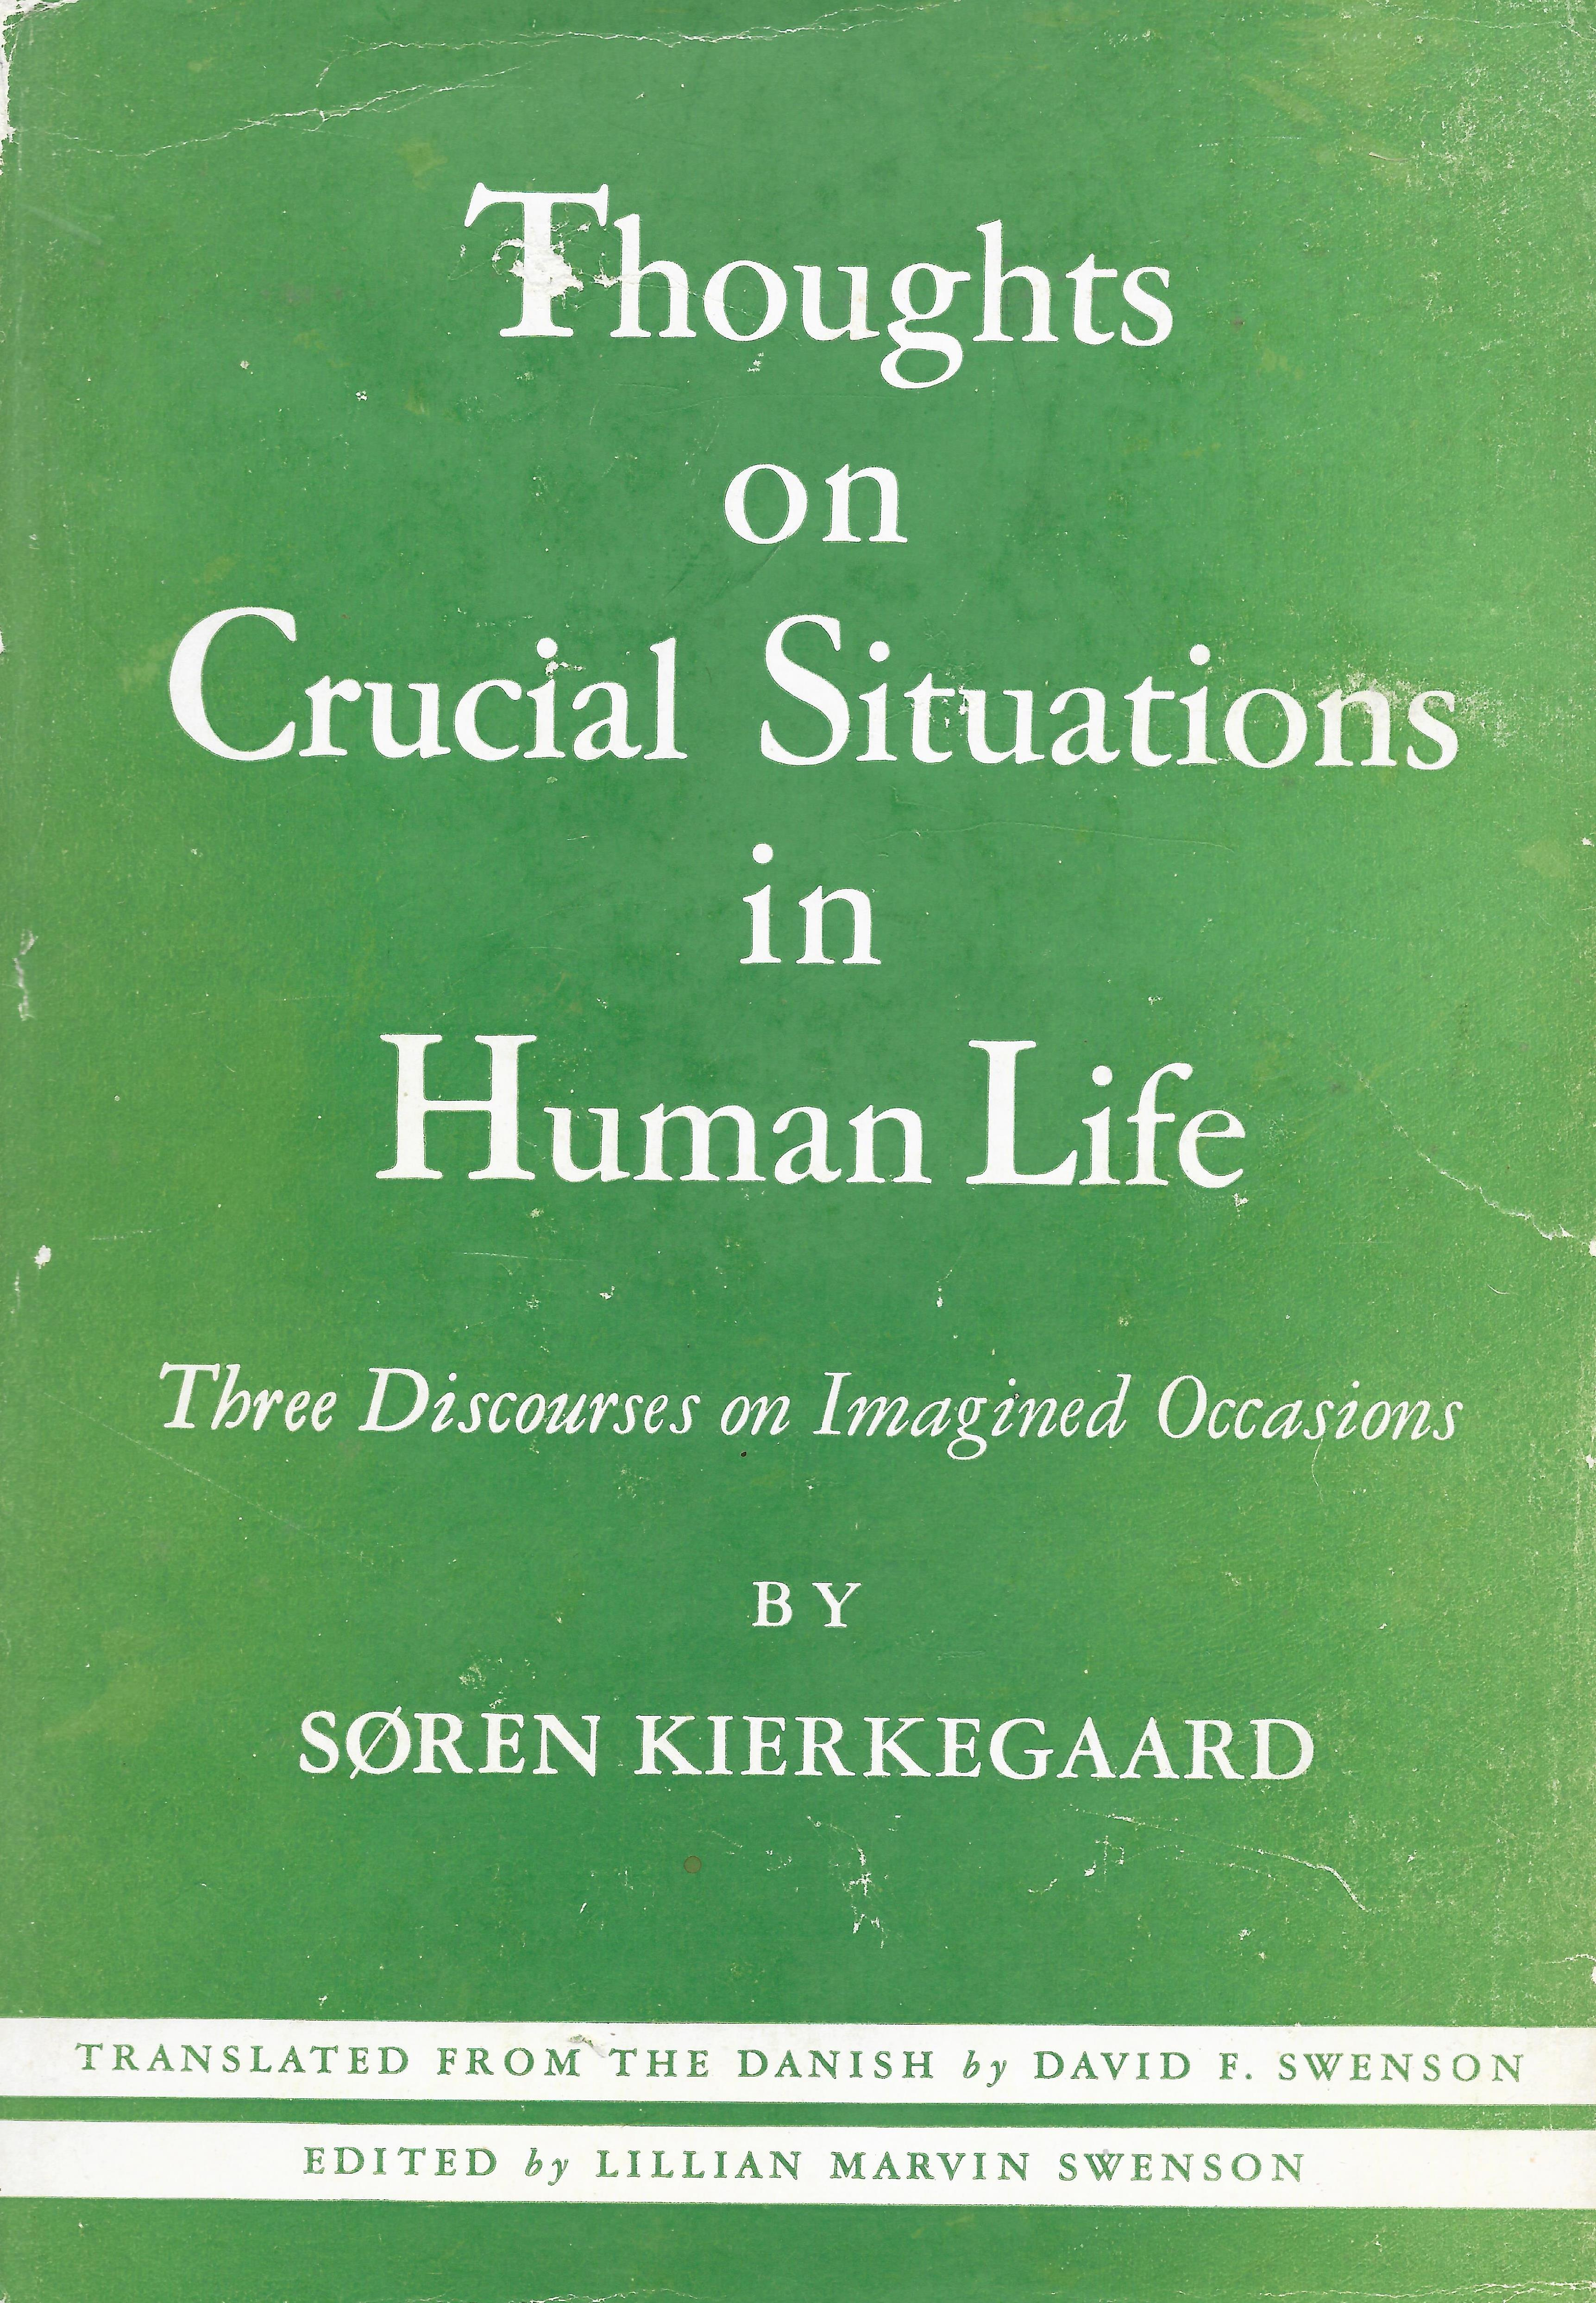 soren kierkegarad 3 stages of life Three discourses on imagined occasions, otherwise known as thoughts on crucial situations, was published concurrently with stages on life's way in stages on life's way kierkegaard posited three stages of life, or spheres of existence: the esthetic, the ethical and the religious.